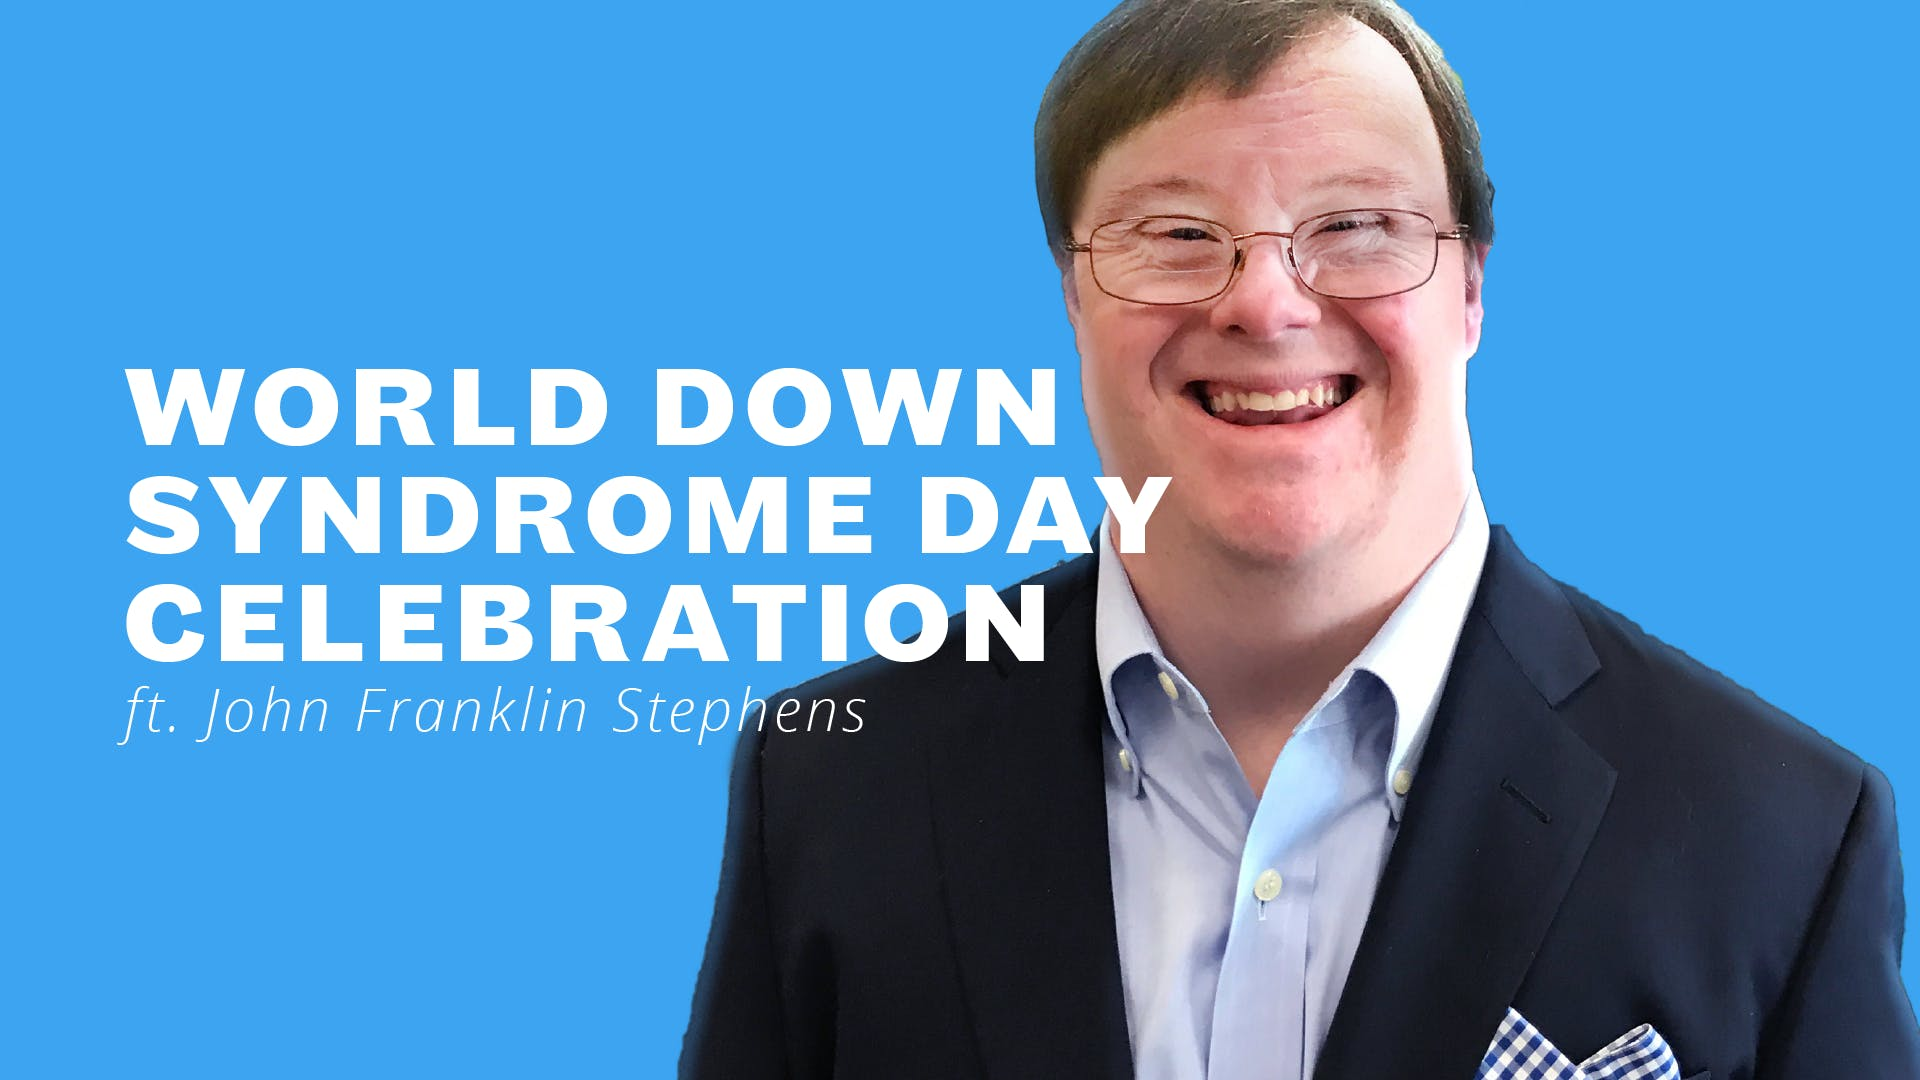 World Down Syndrome Day Celebration | Voices for the Voiceless